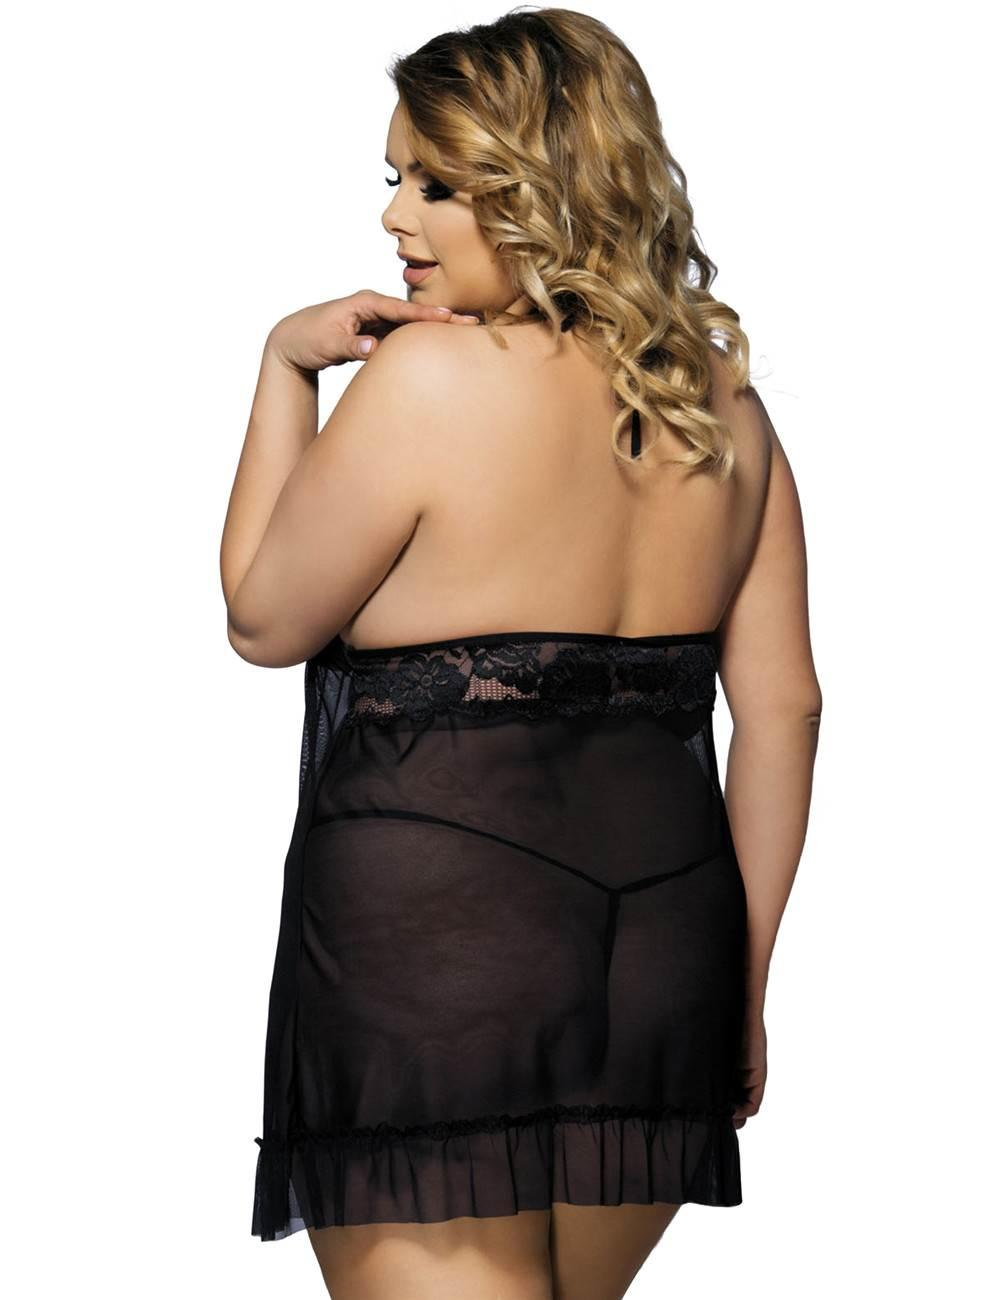 Black Halterneck Babydoll Set rear view